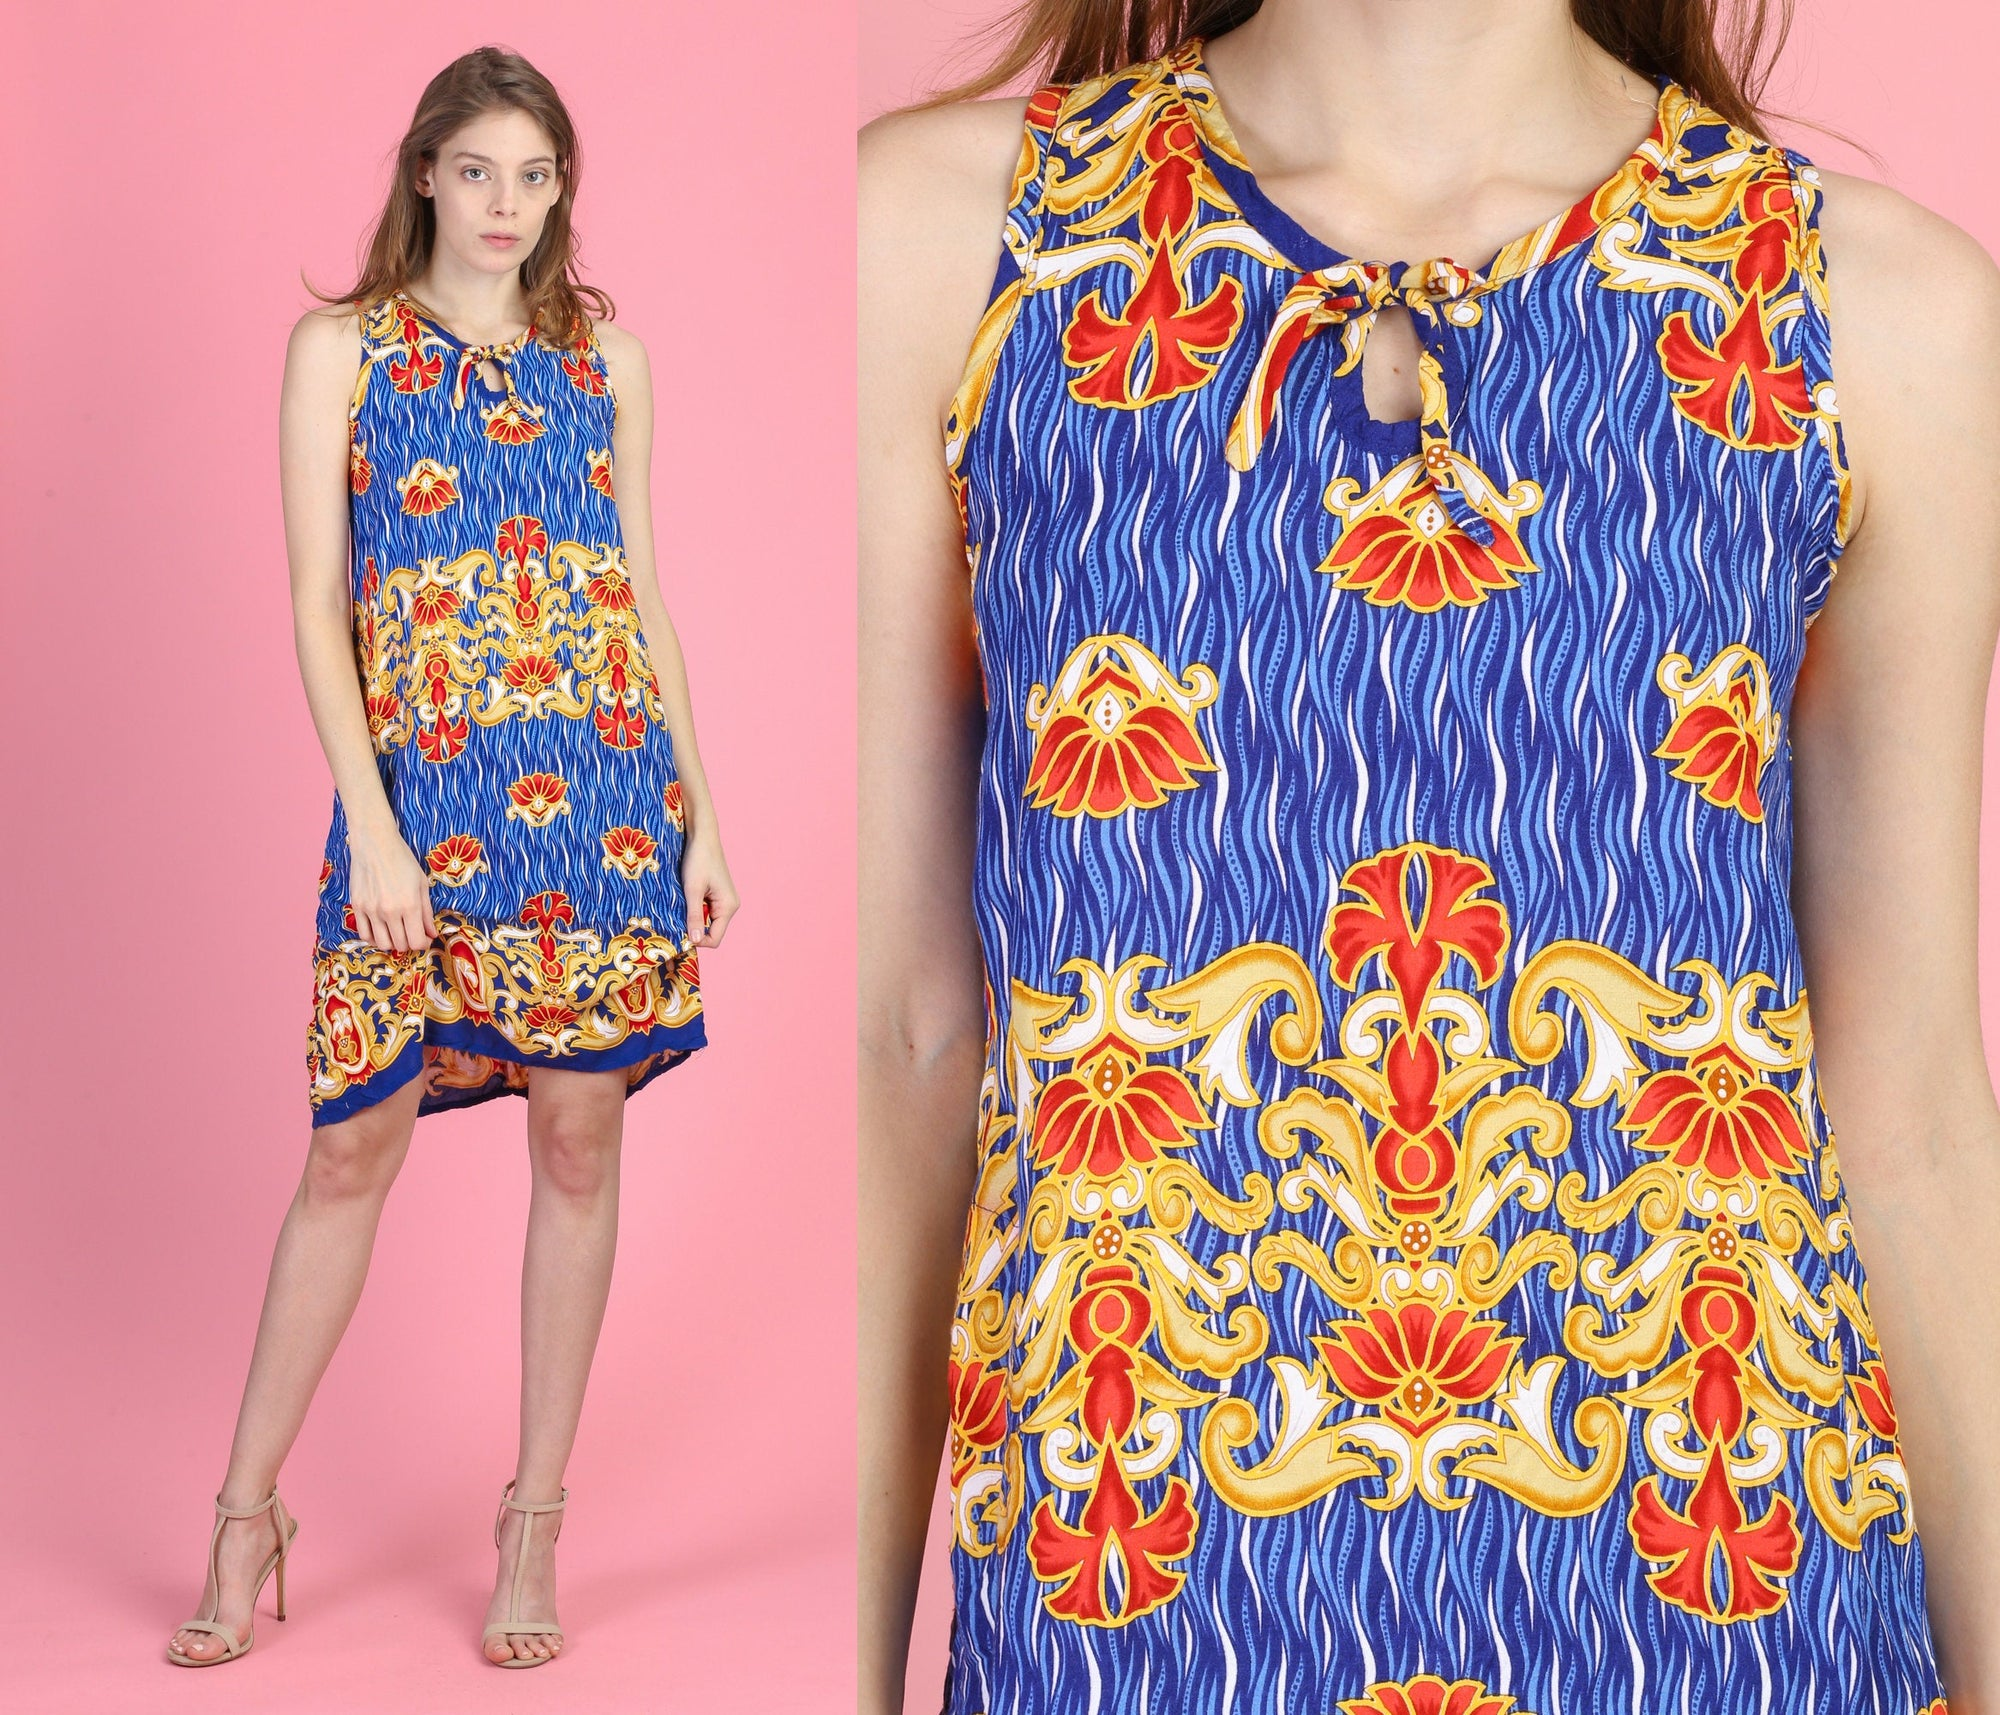 90s Boho Rayon Mini Dress - Small